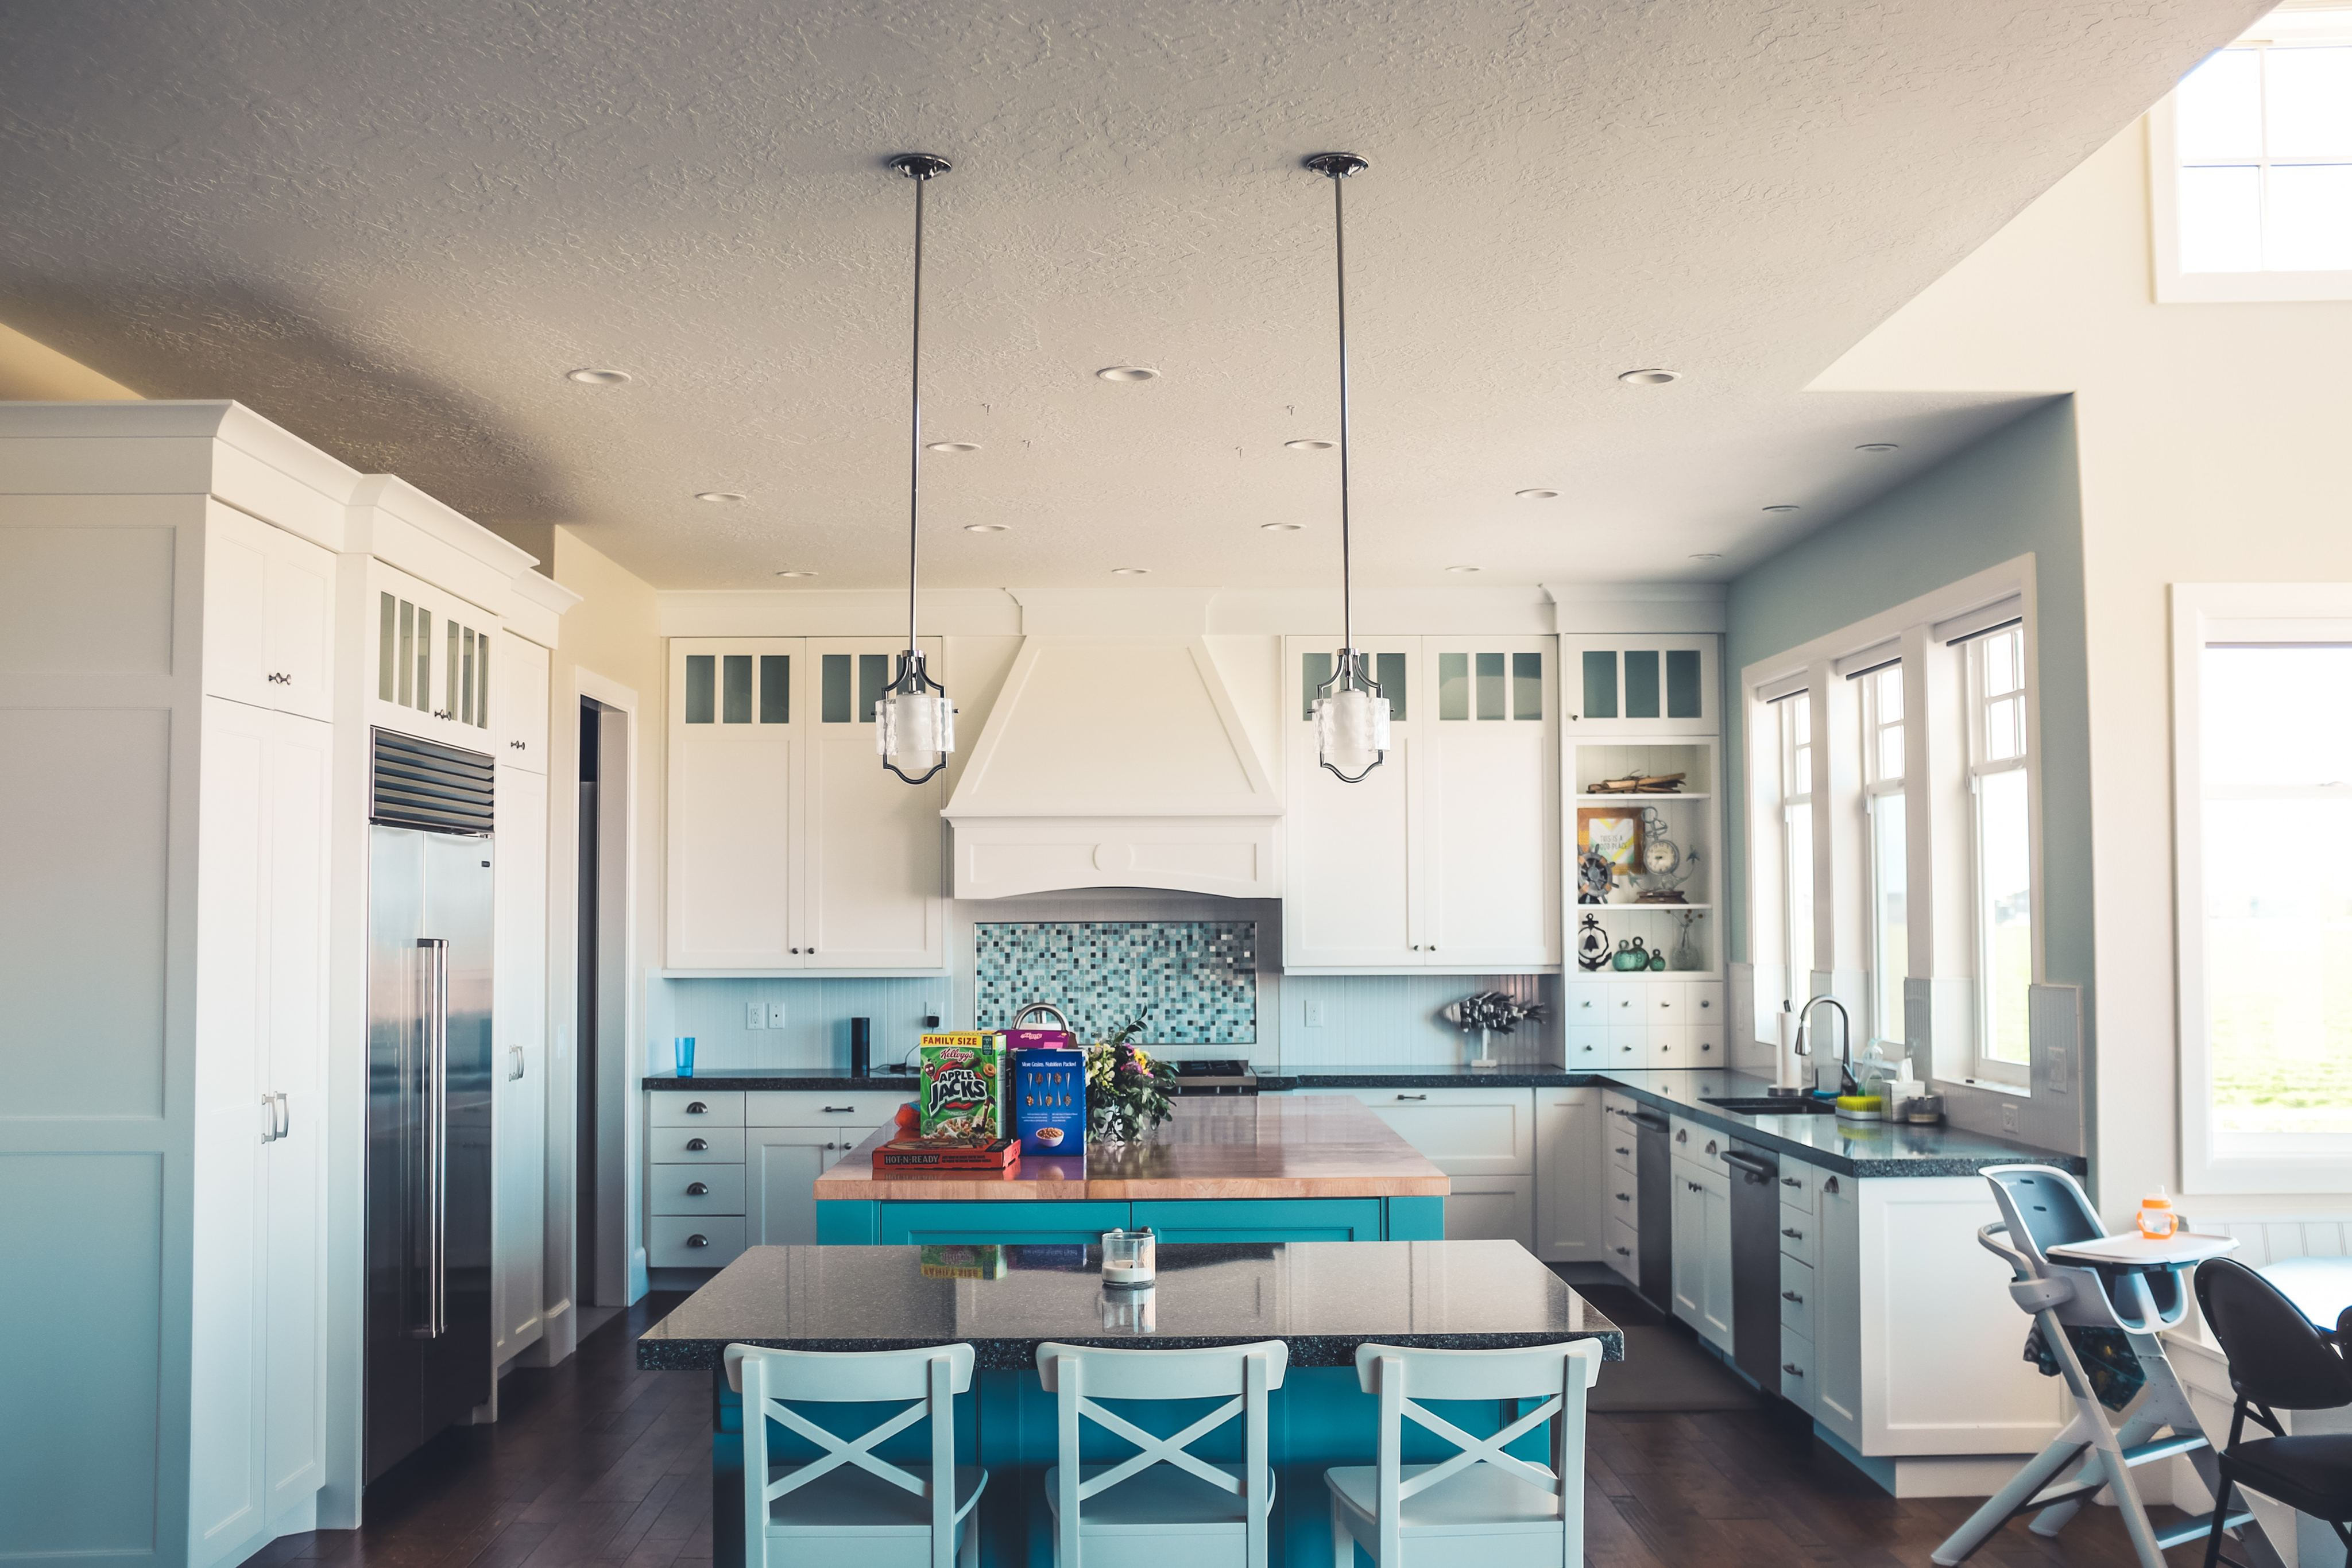 How To Make Your Home Look Cleaner Than It Actually Is-image